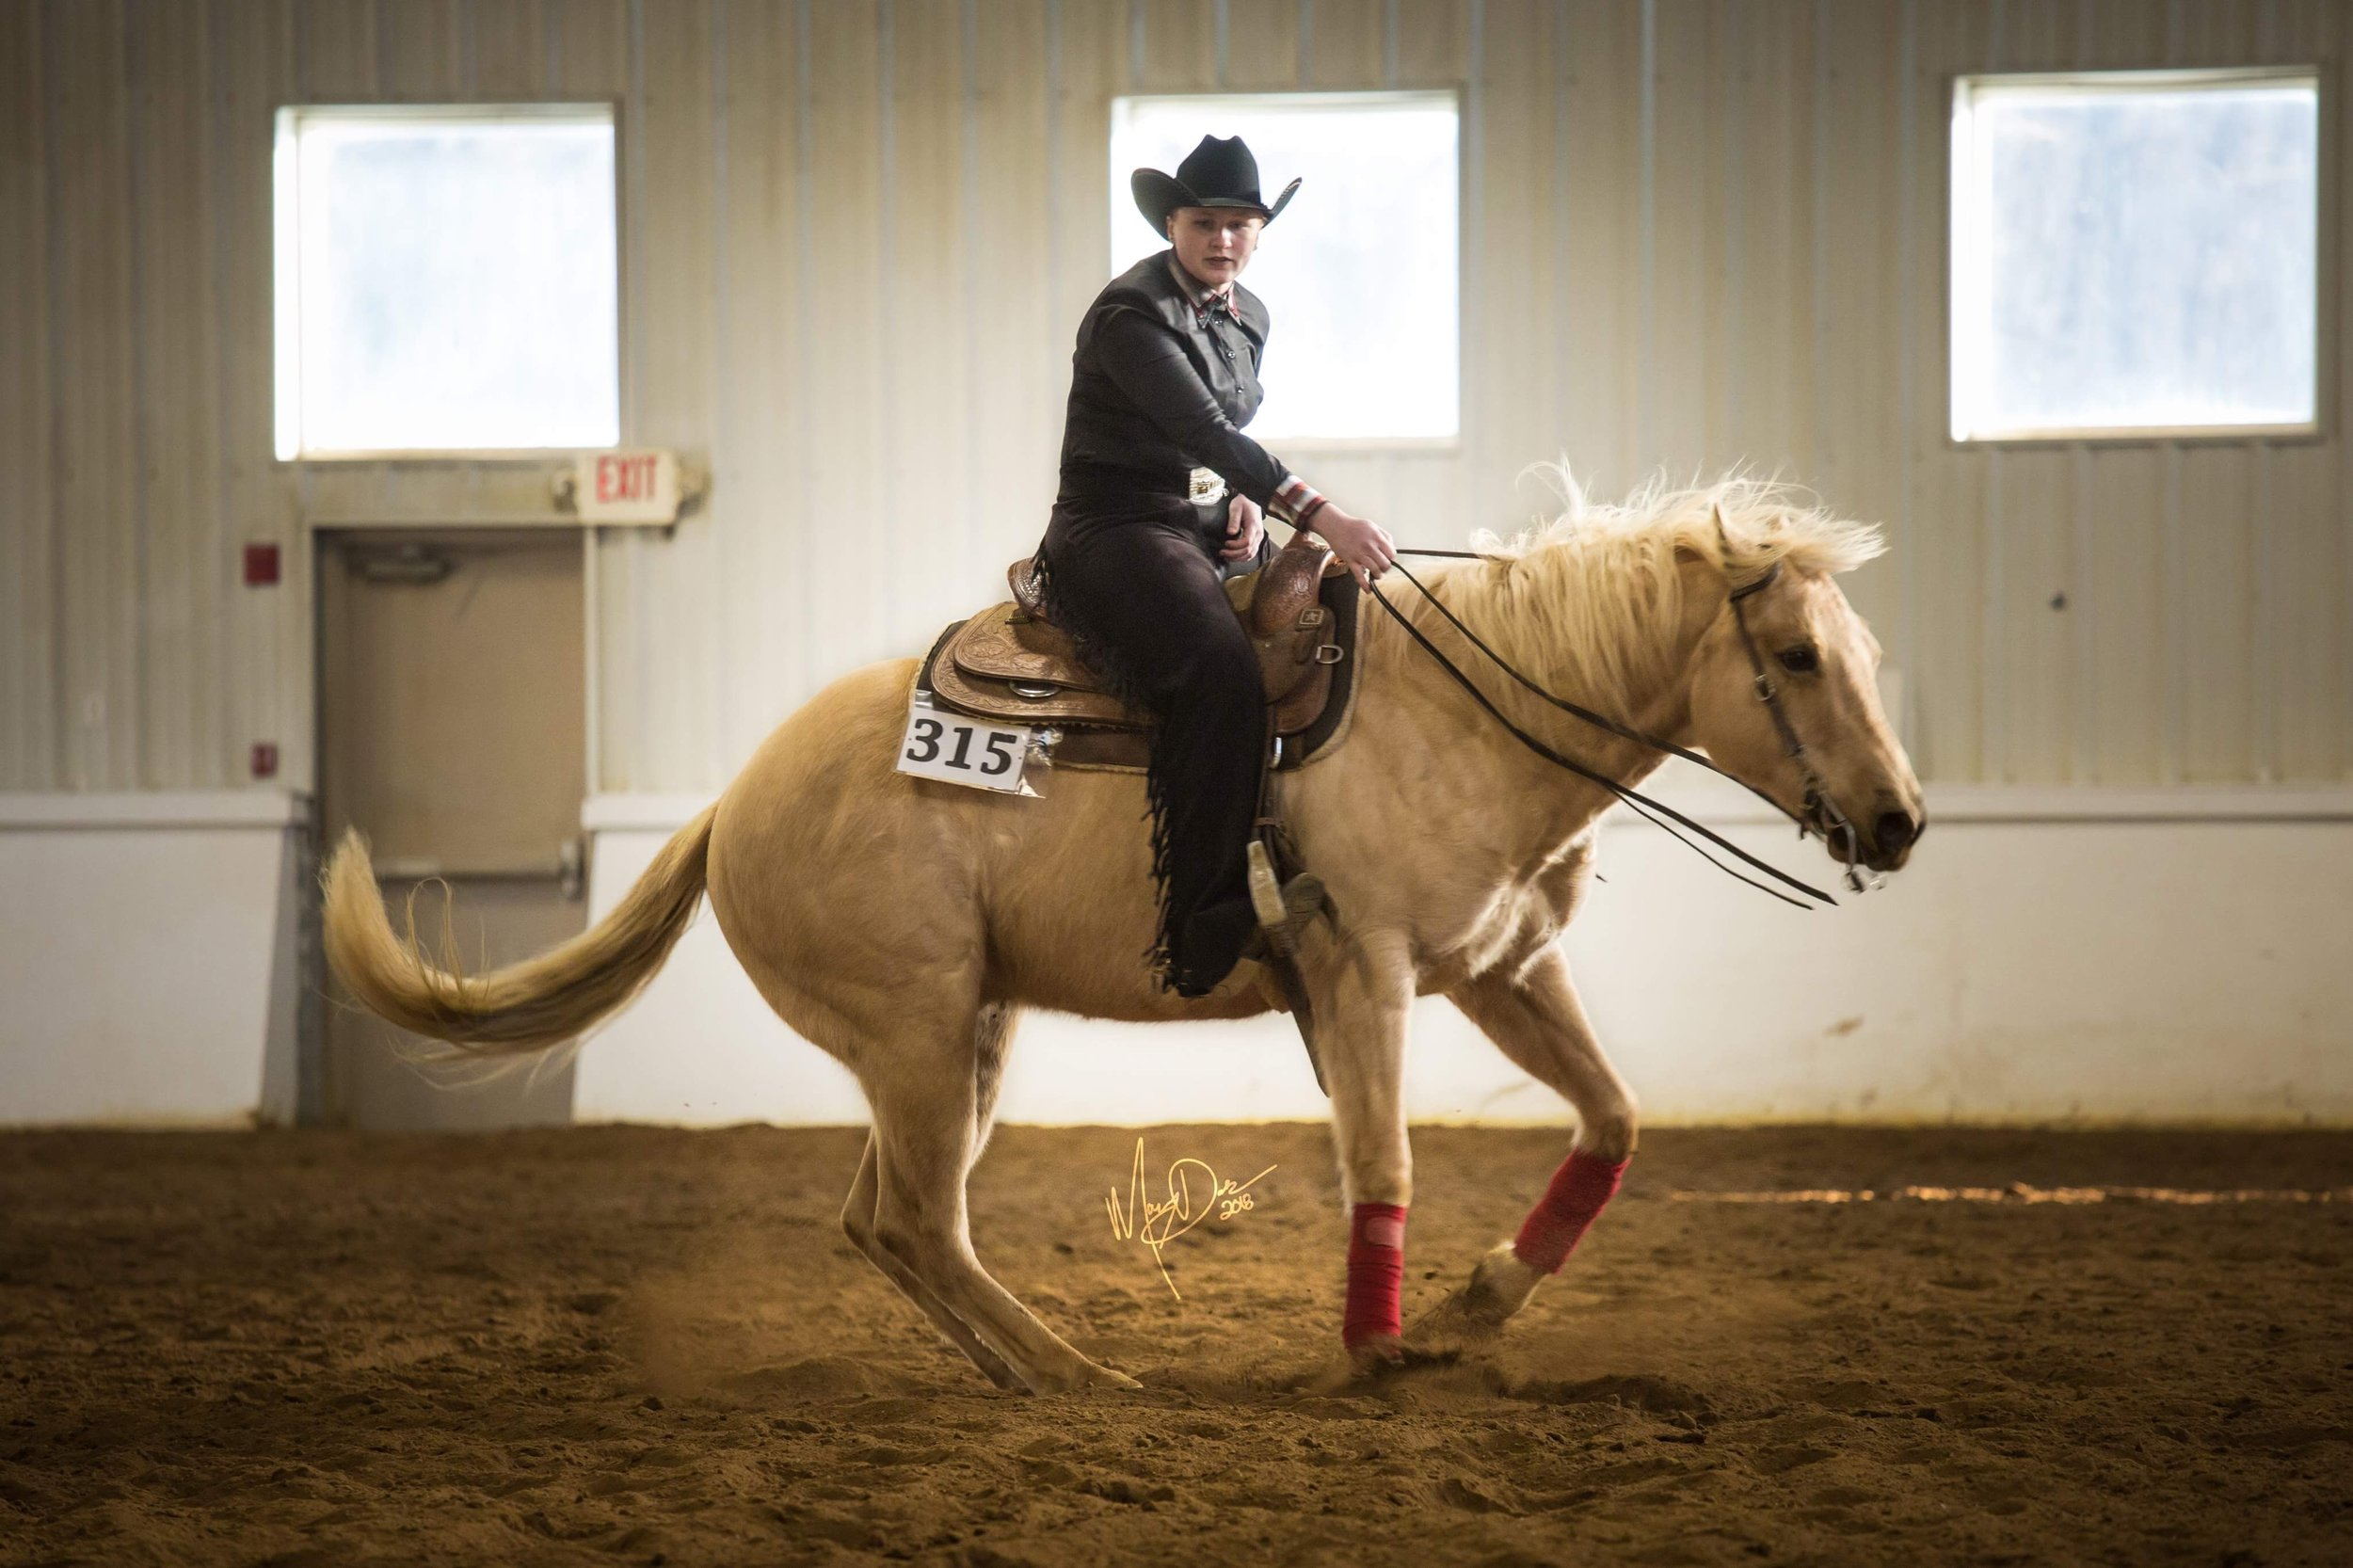 Lily Atkinson competing in Open Reining at an IHSA show. Photo by Eminent Equine